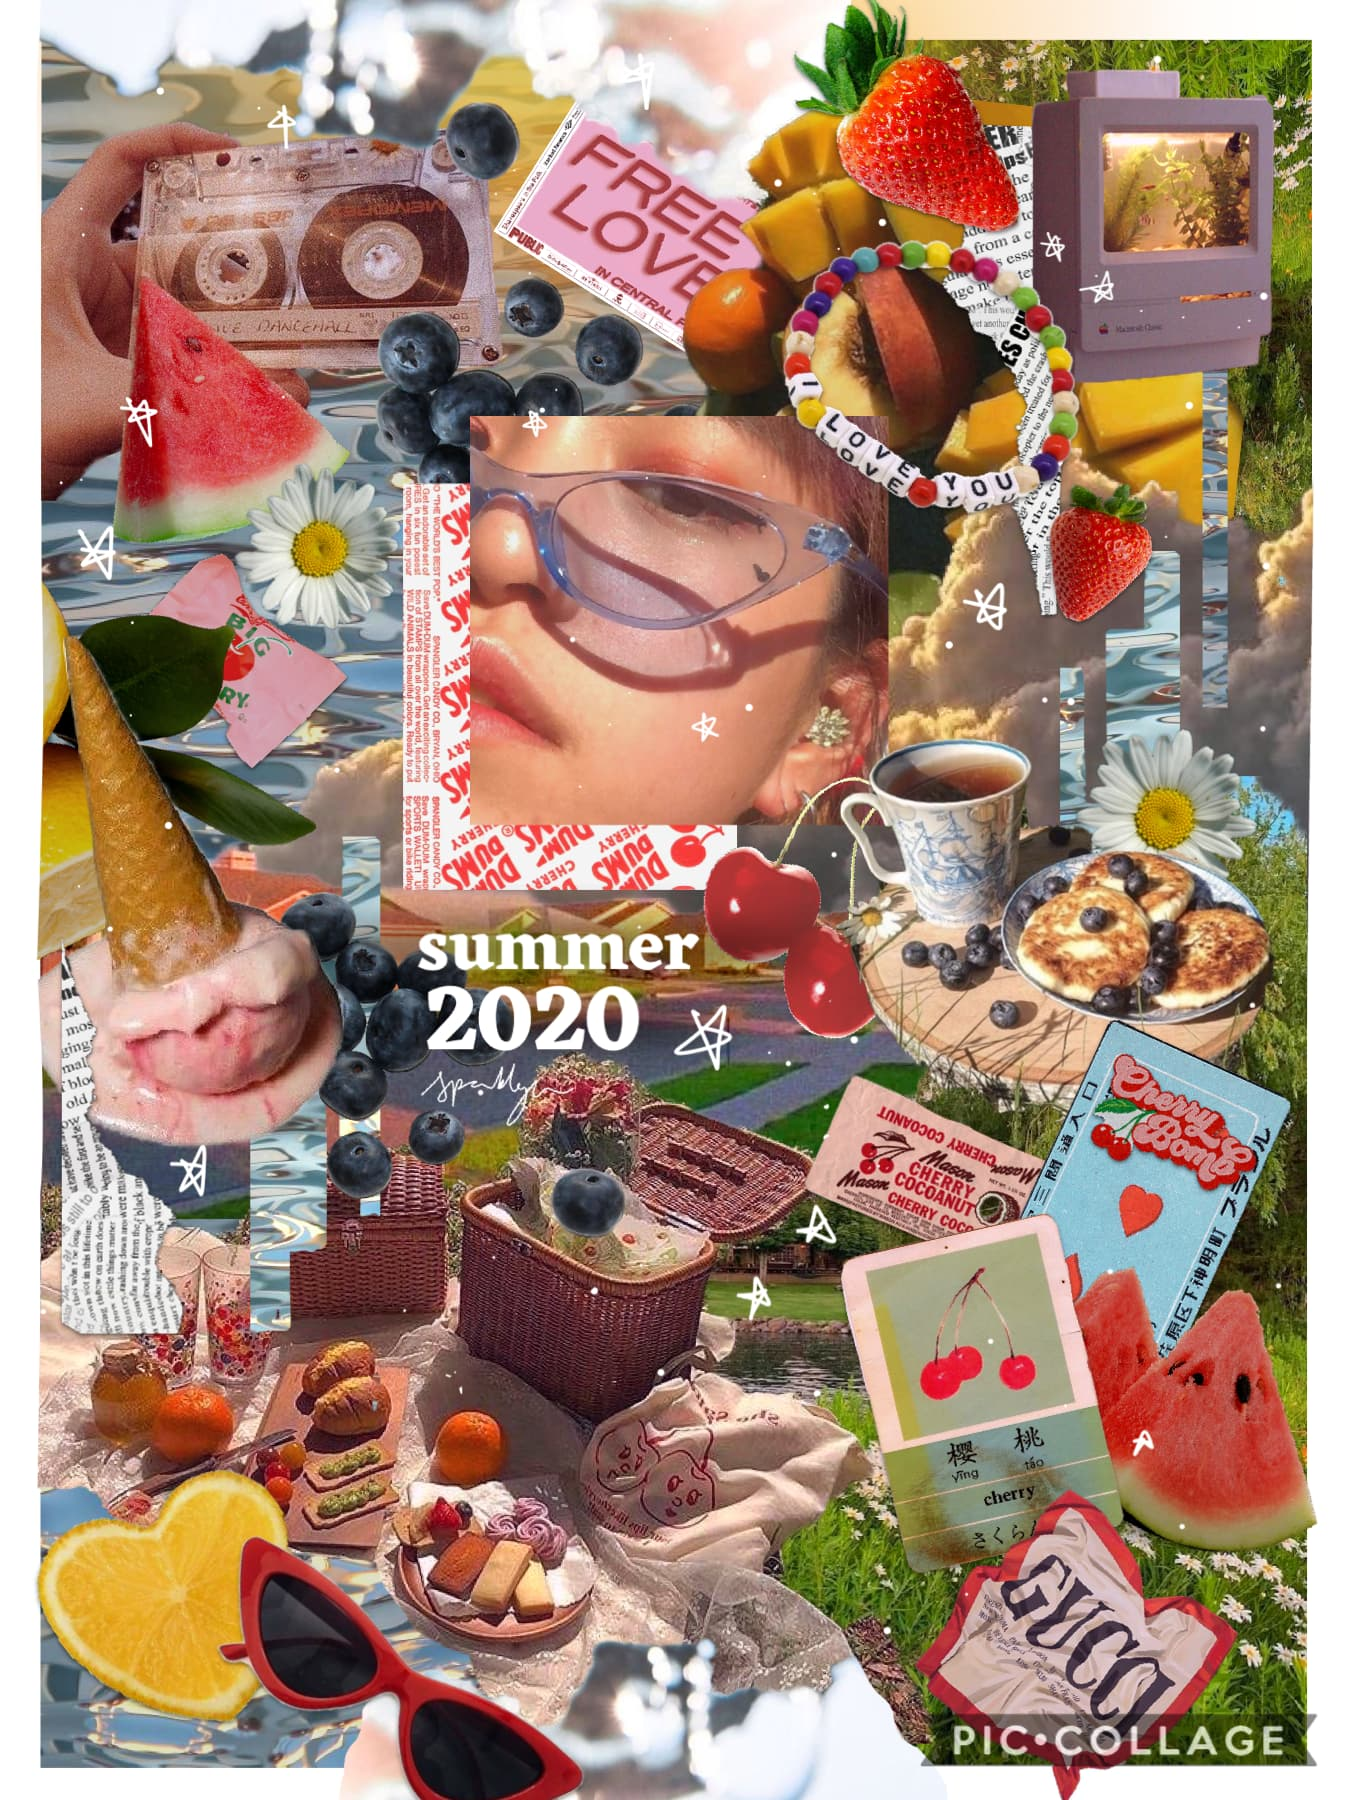 I made this for all the summer contests that I just now realized all ended 🙂. Lol this collage is a lot brighter in color than my past collages. Hah hopefully it doesn't stick out like a sore thumb